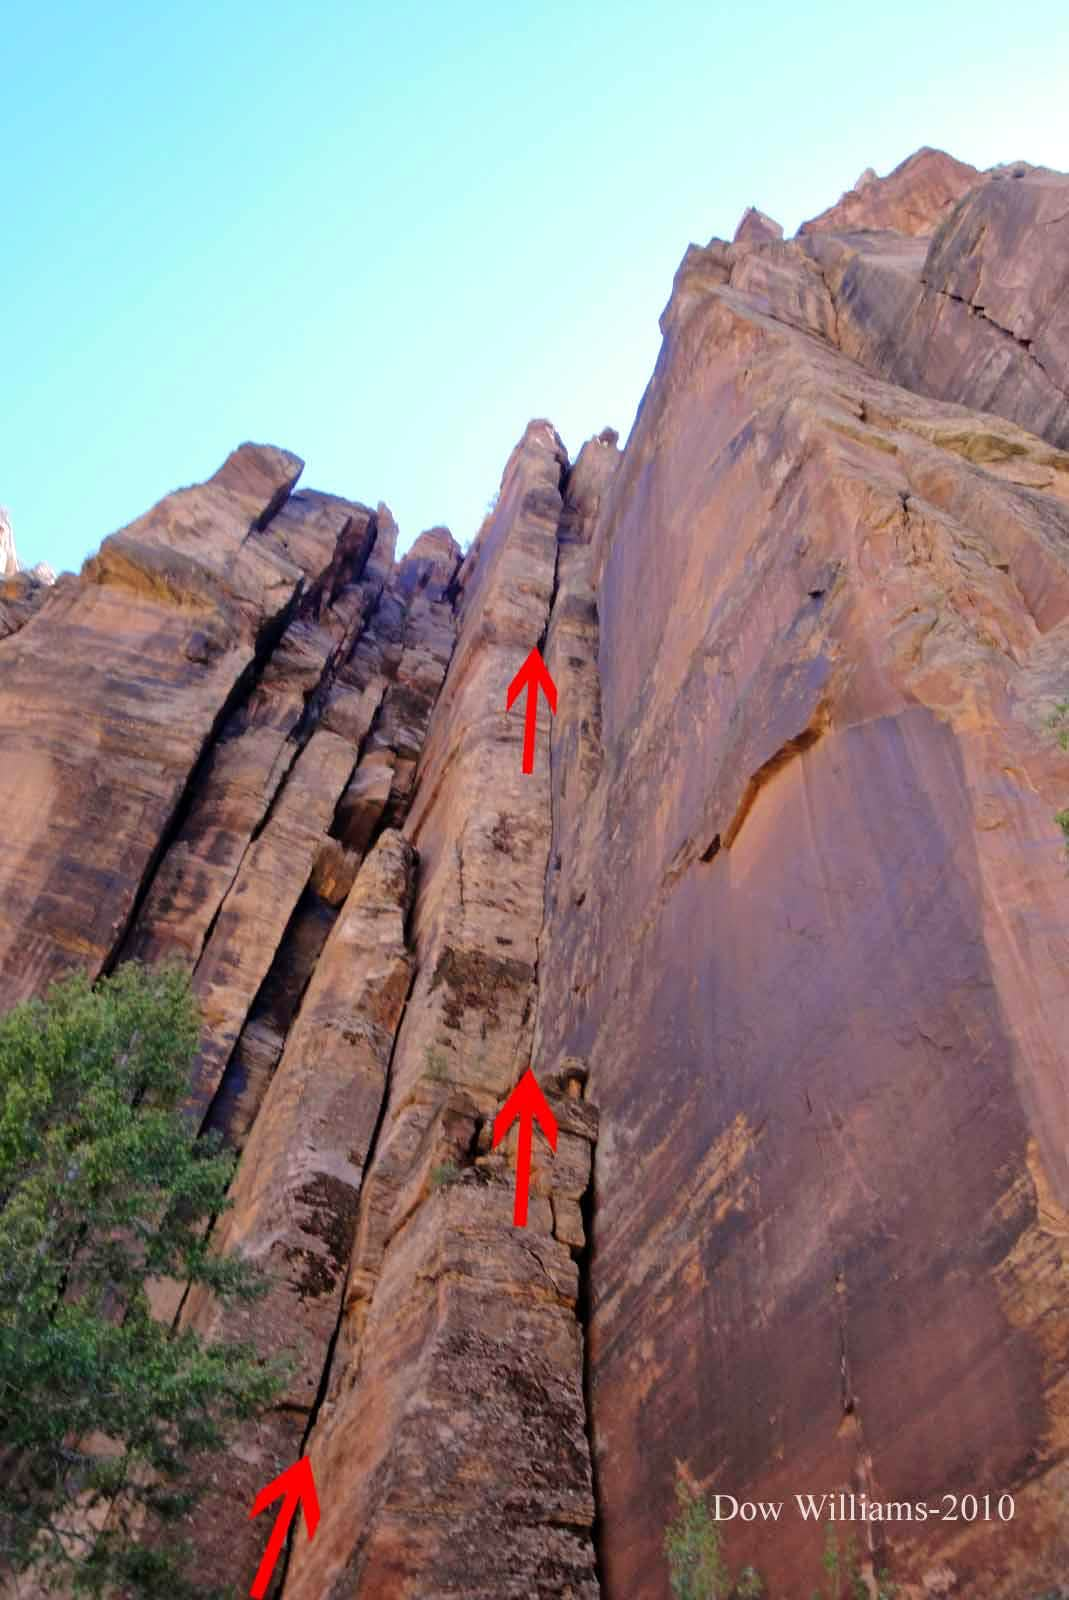 Gypsy's Curse, 5.10+, 4 Pitches